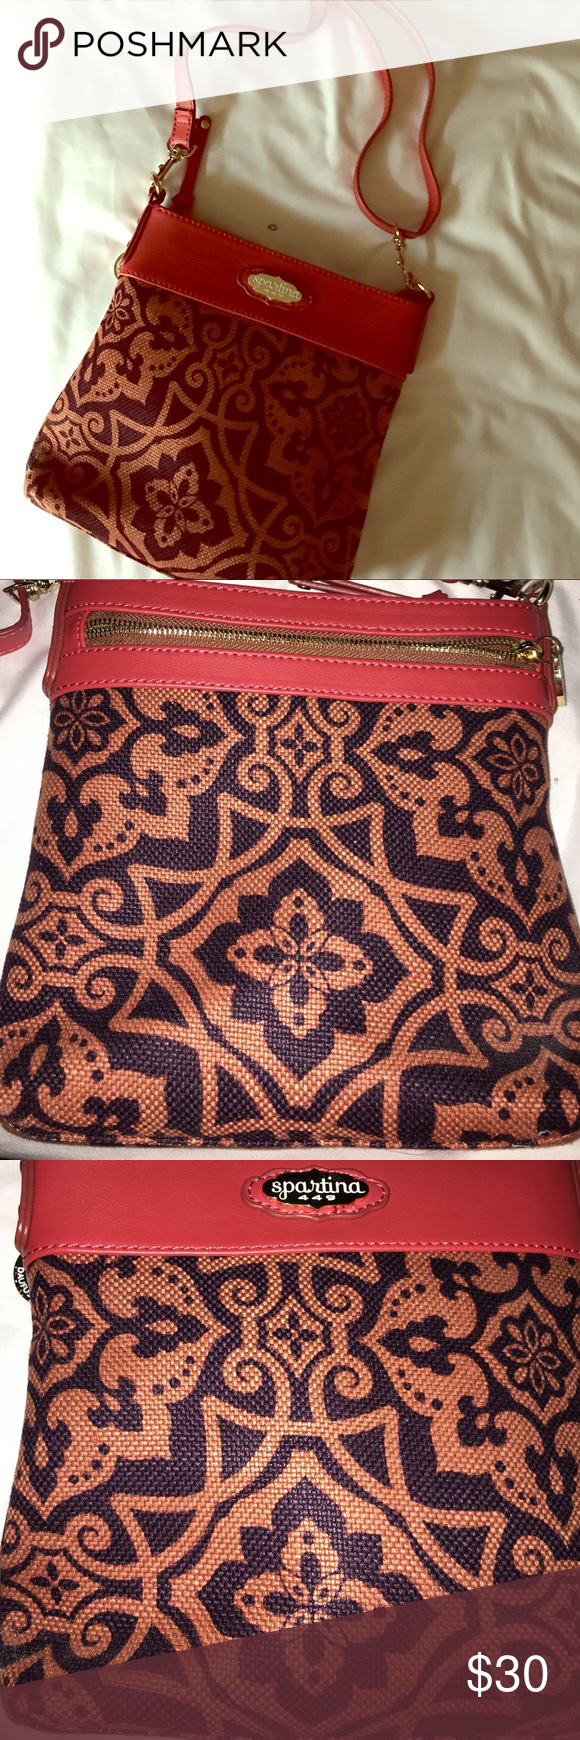 Spartina Crossbody Purse Spartina Cross body bag!  Bought new never used! Bags Crossbody Bags